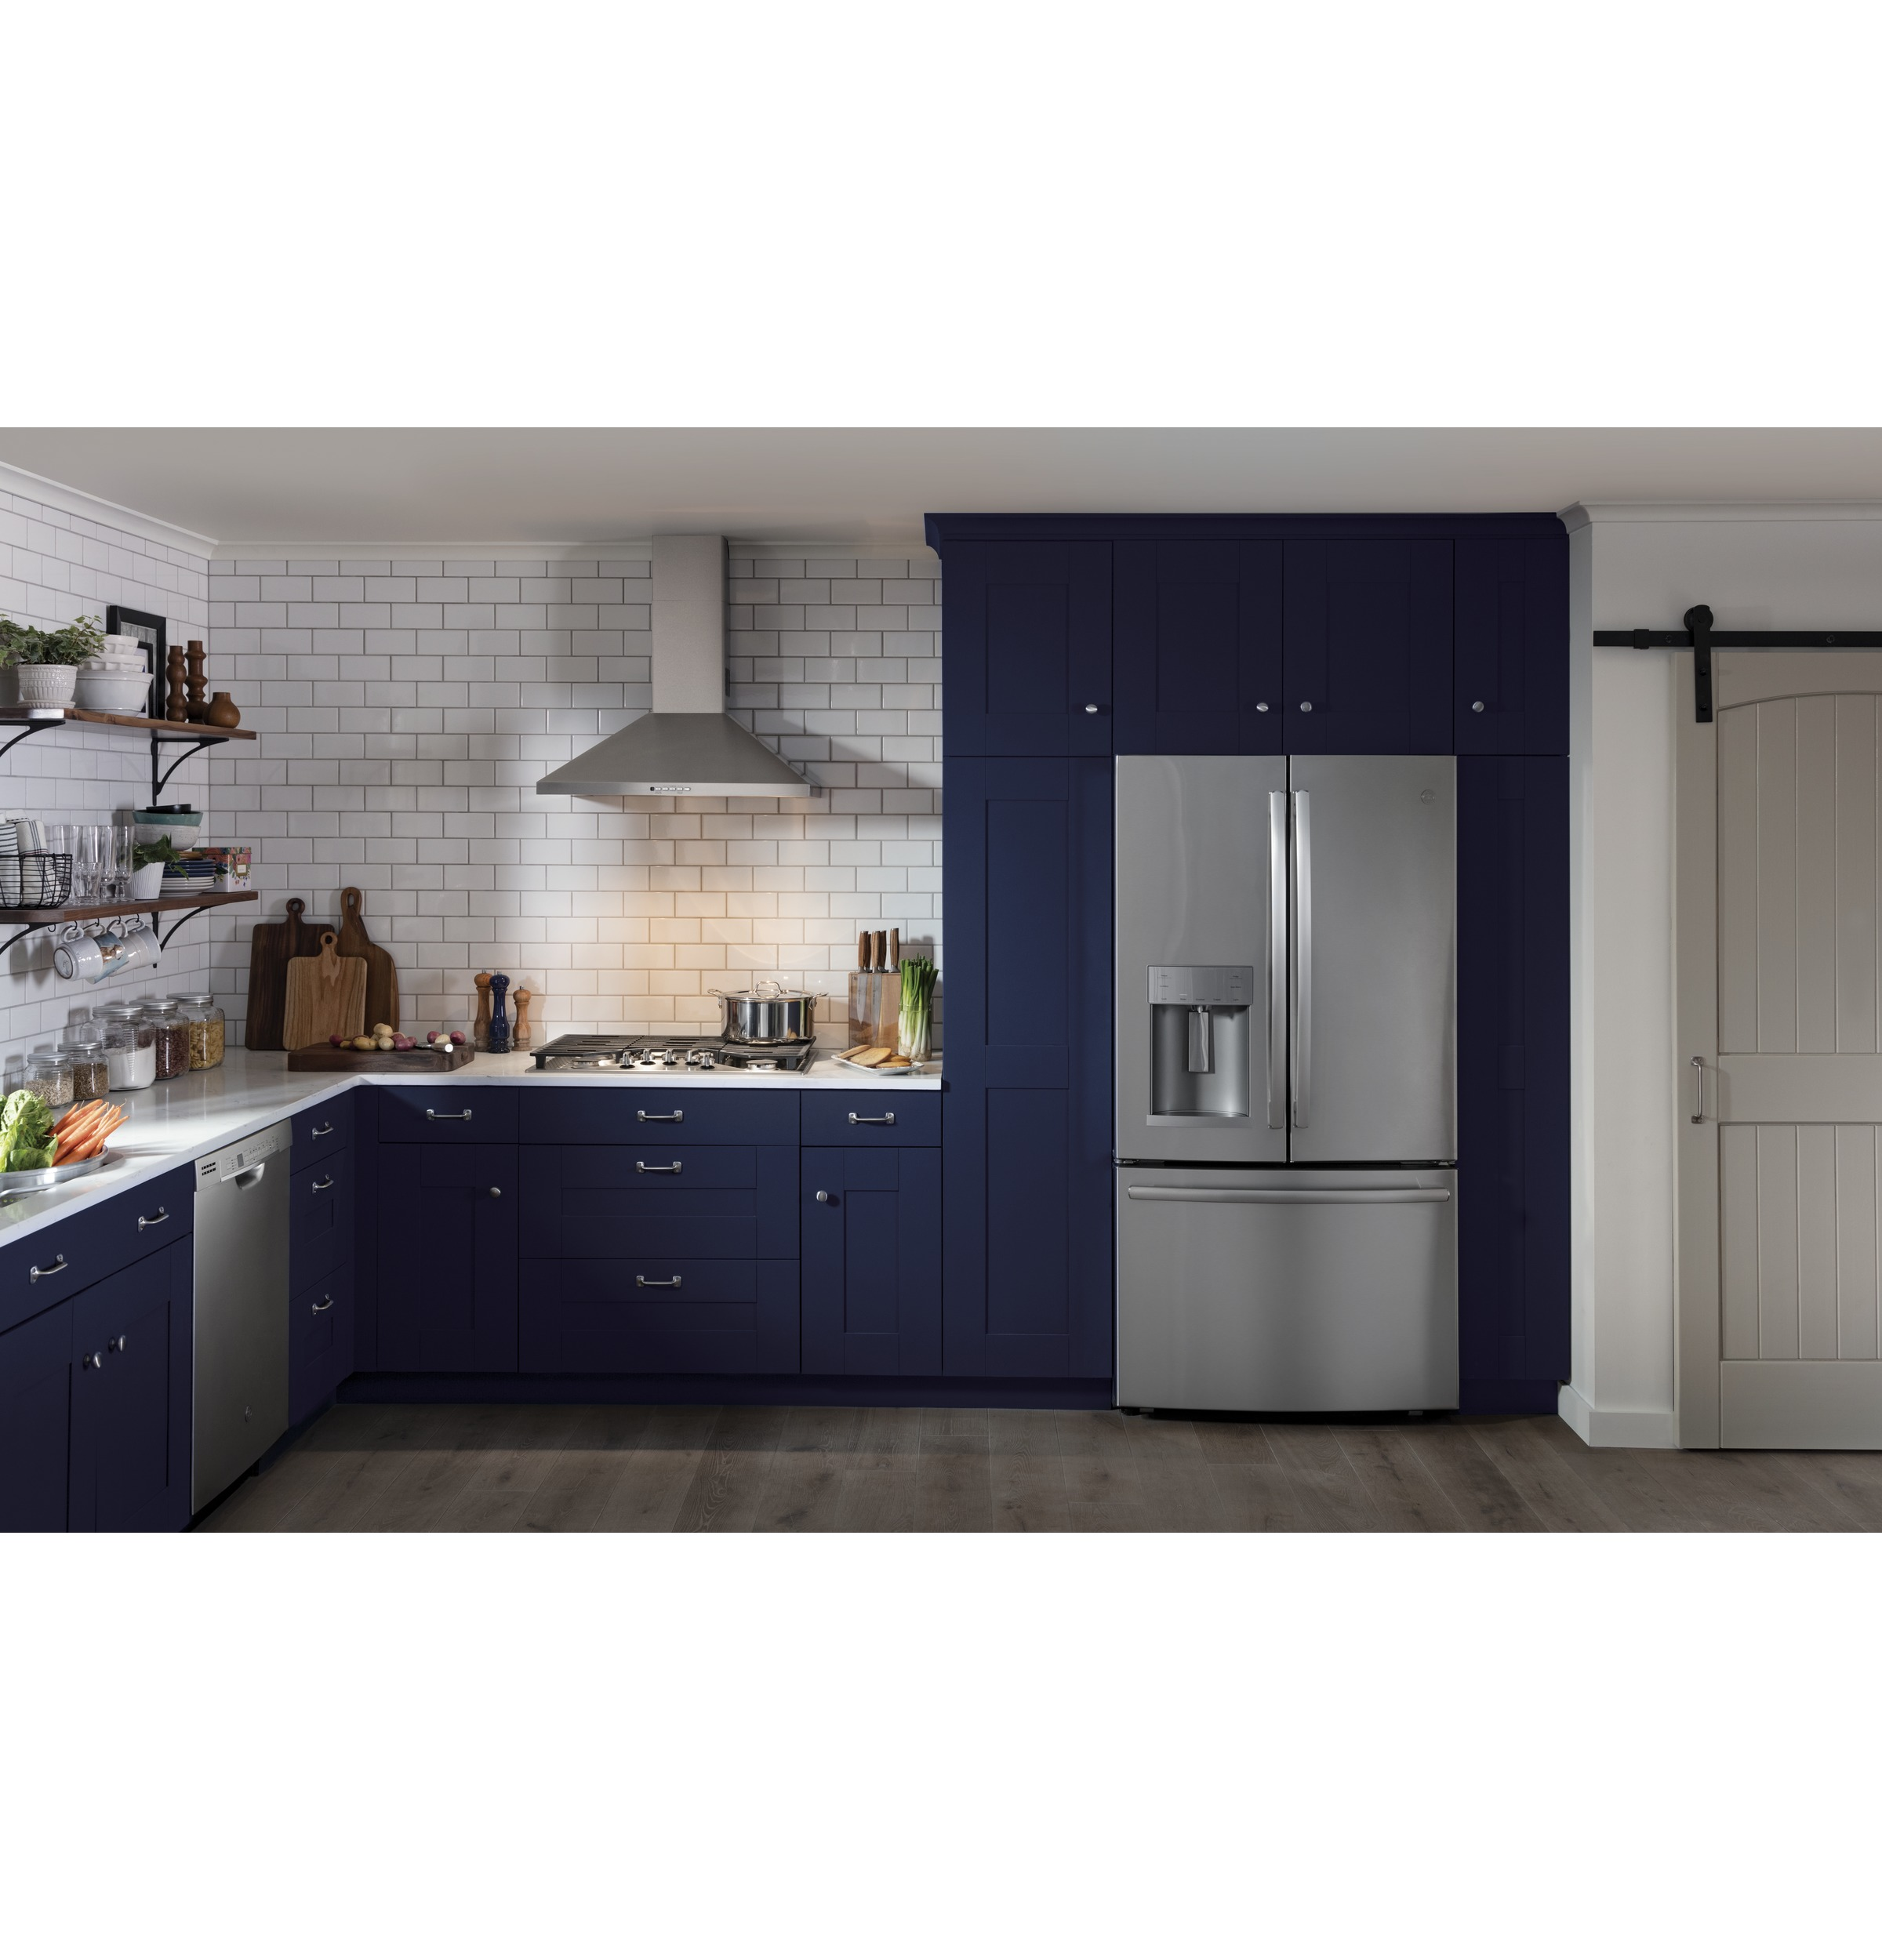 Model: GYE22HSKSS | GE® ENERGY STAR® 22.2 Cu. Ft. Counter-Depth French-Door Refrigerator